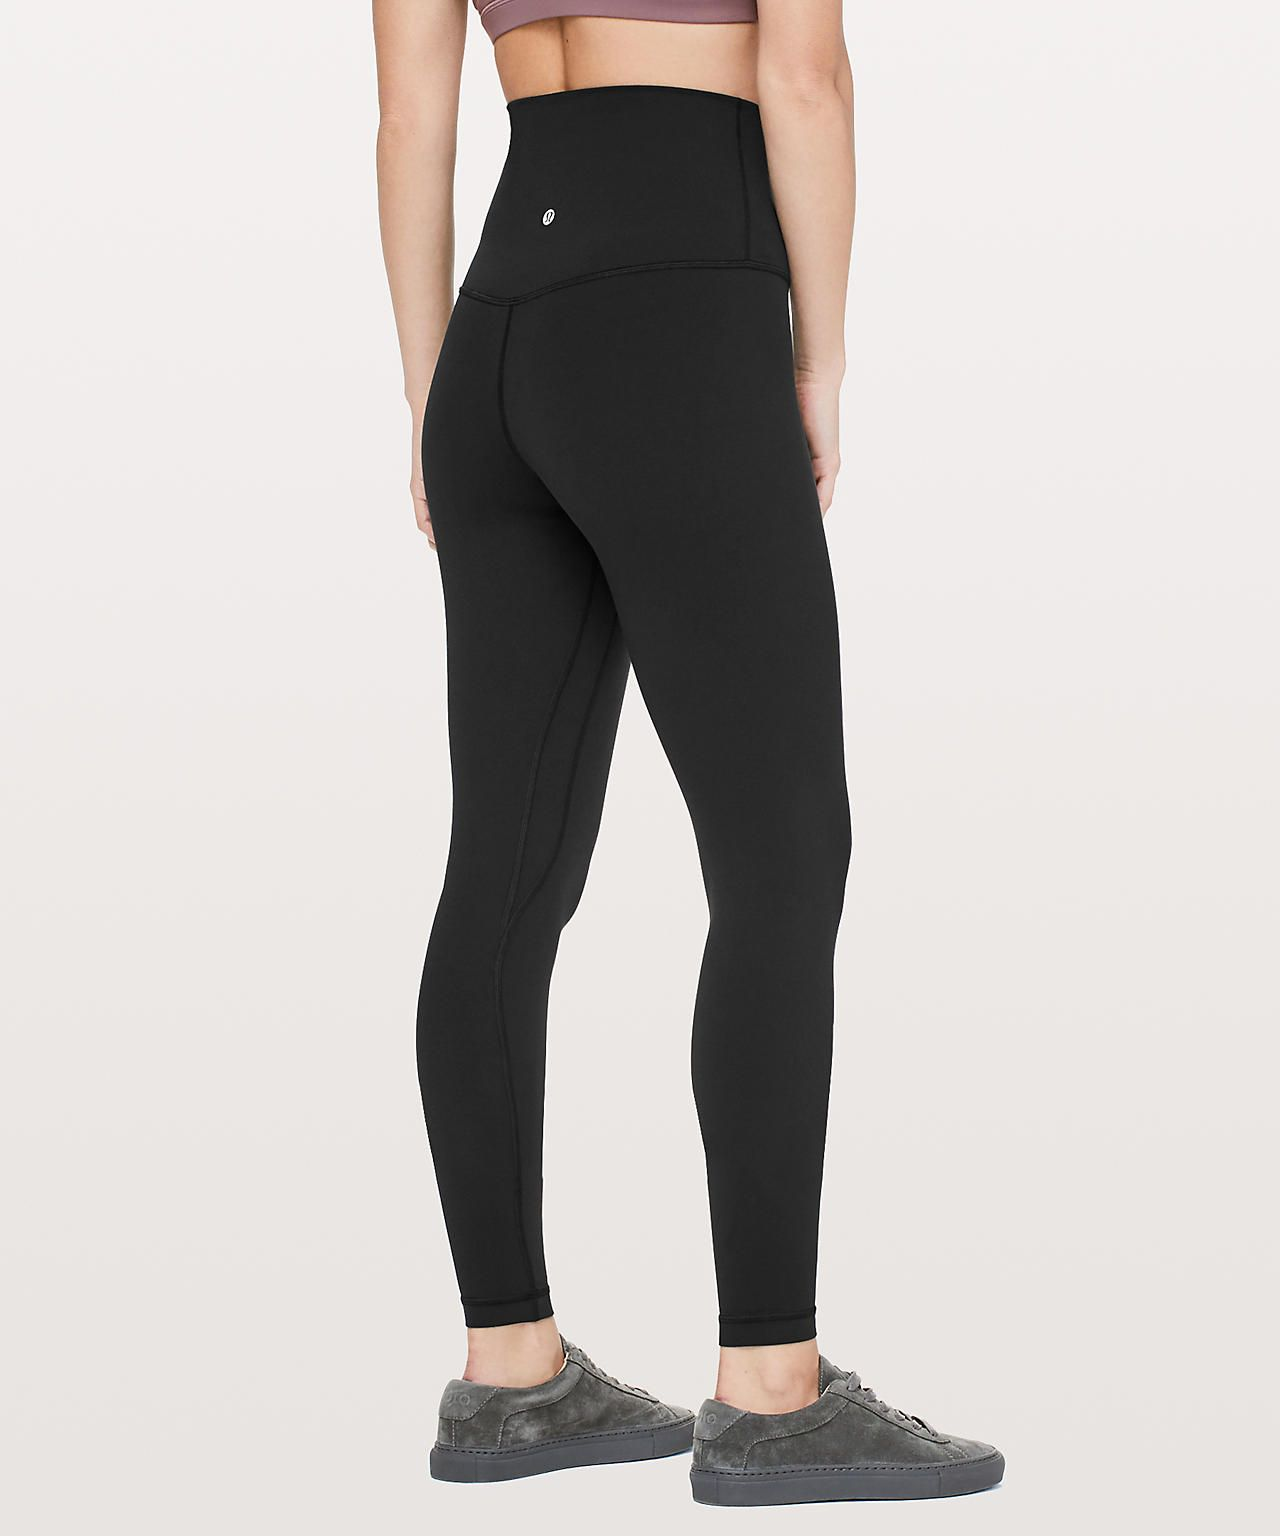 963ee87ecd230 Lululemon Align Super-High Rise Pant 28 *Online Only | Things I Want ...